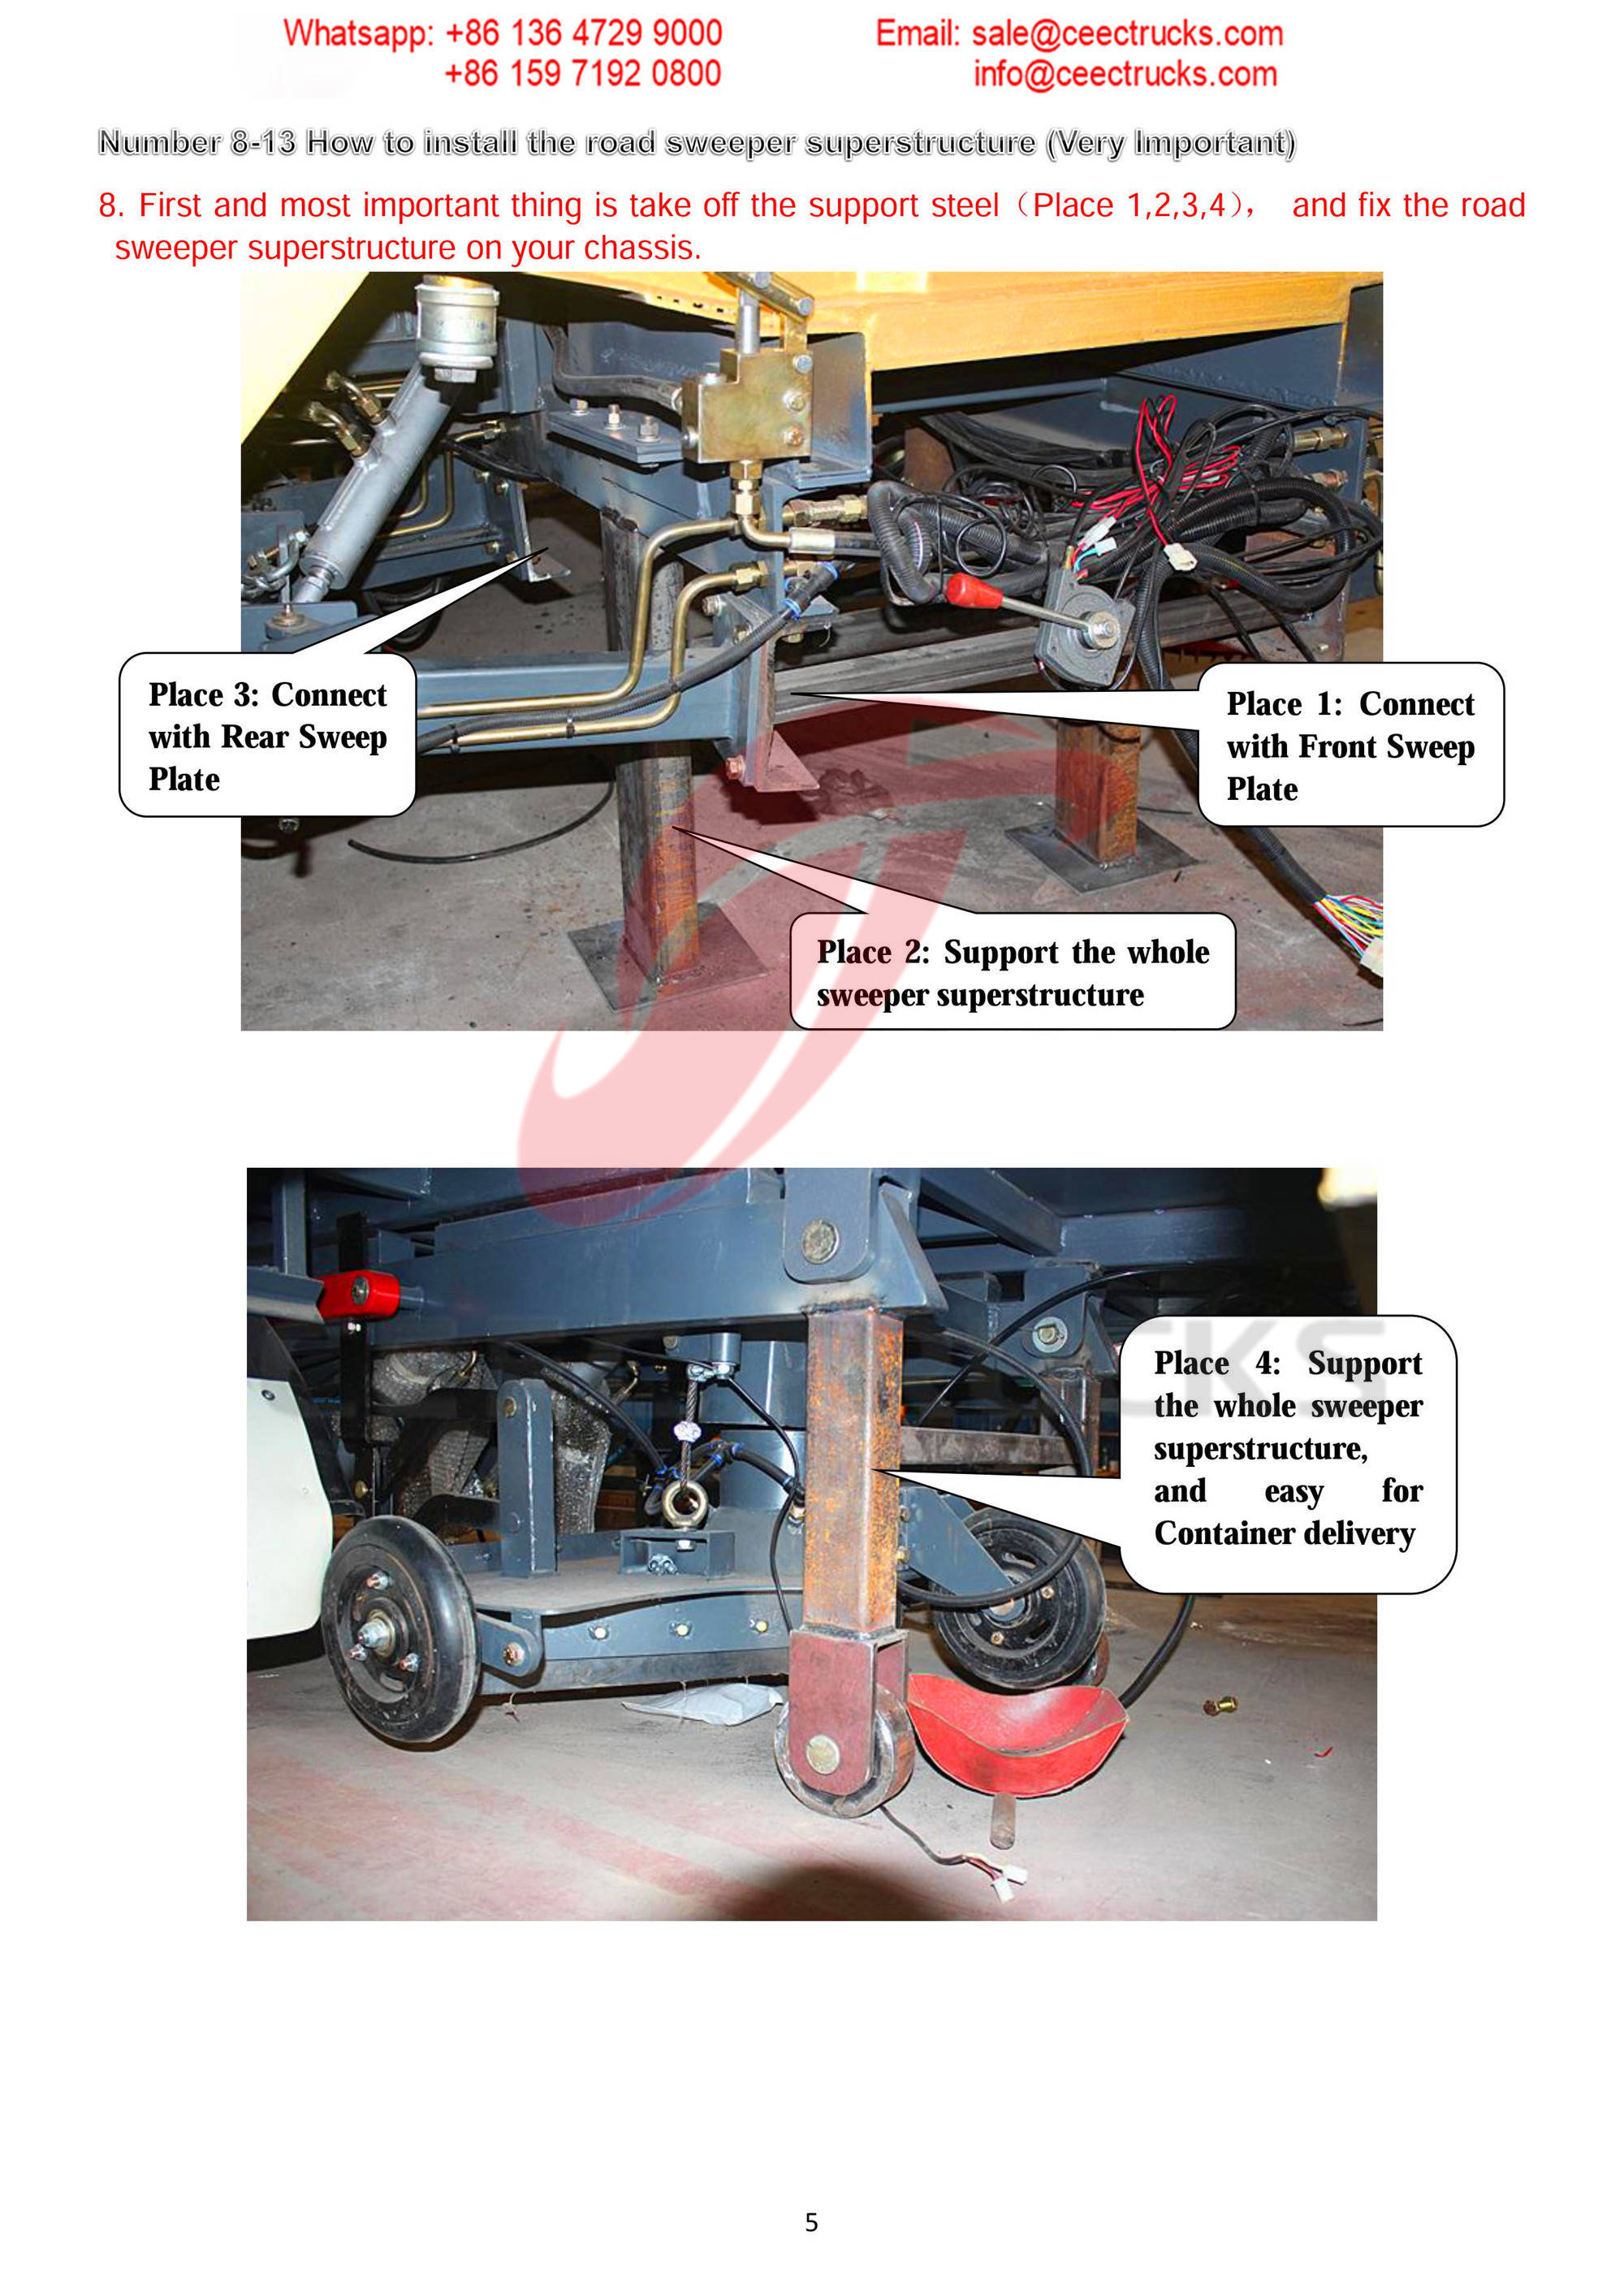 How to install road sweeper superstructure